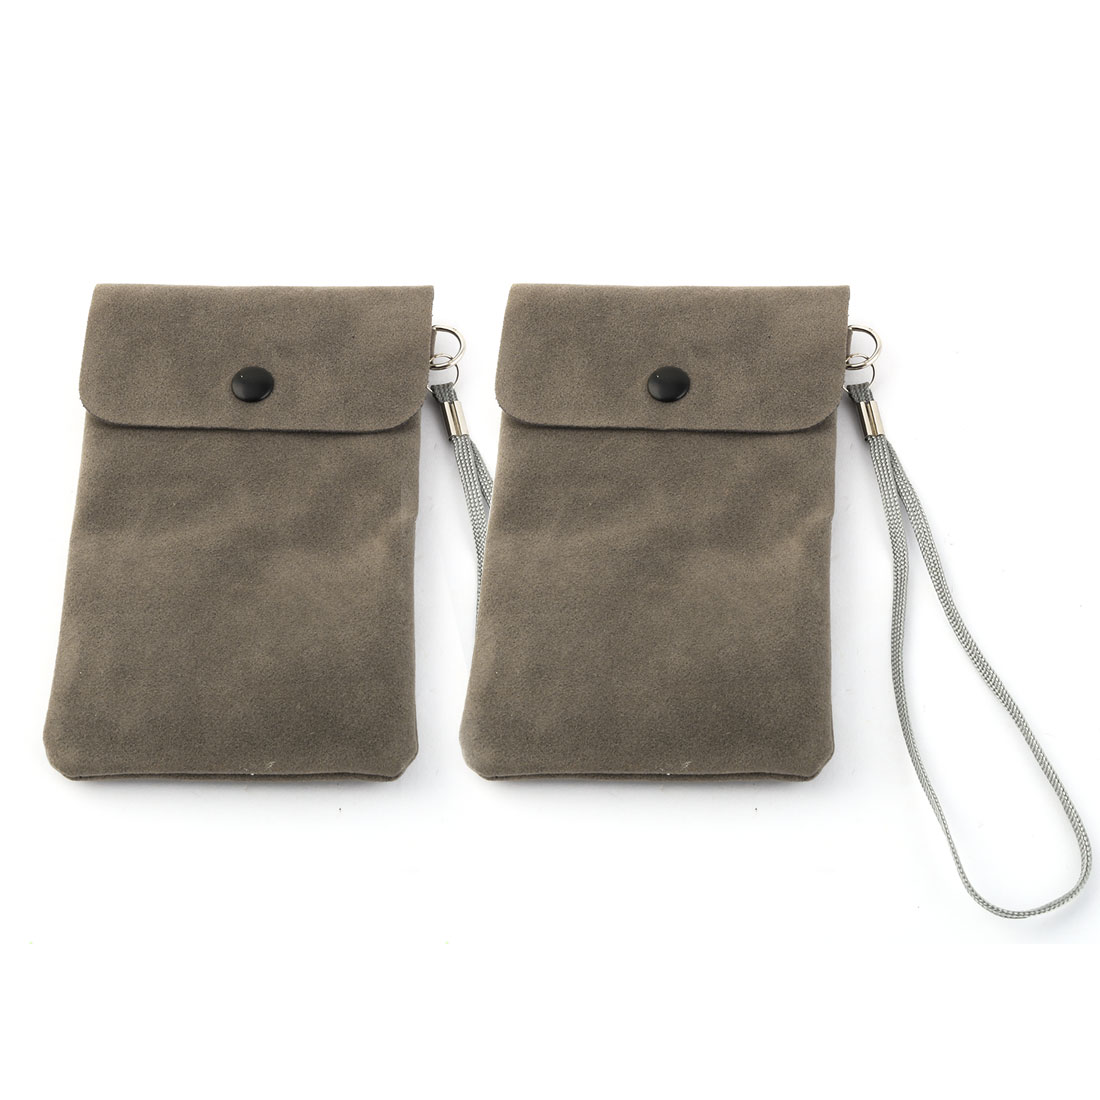 Phone Faux Leather Pocket Bag Phone Pouch Case Holder Dark Gray w Lanyard 2pcs